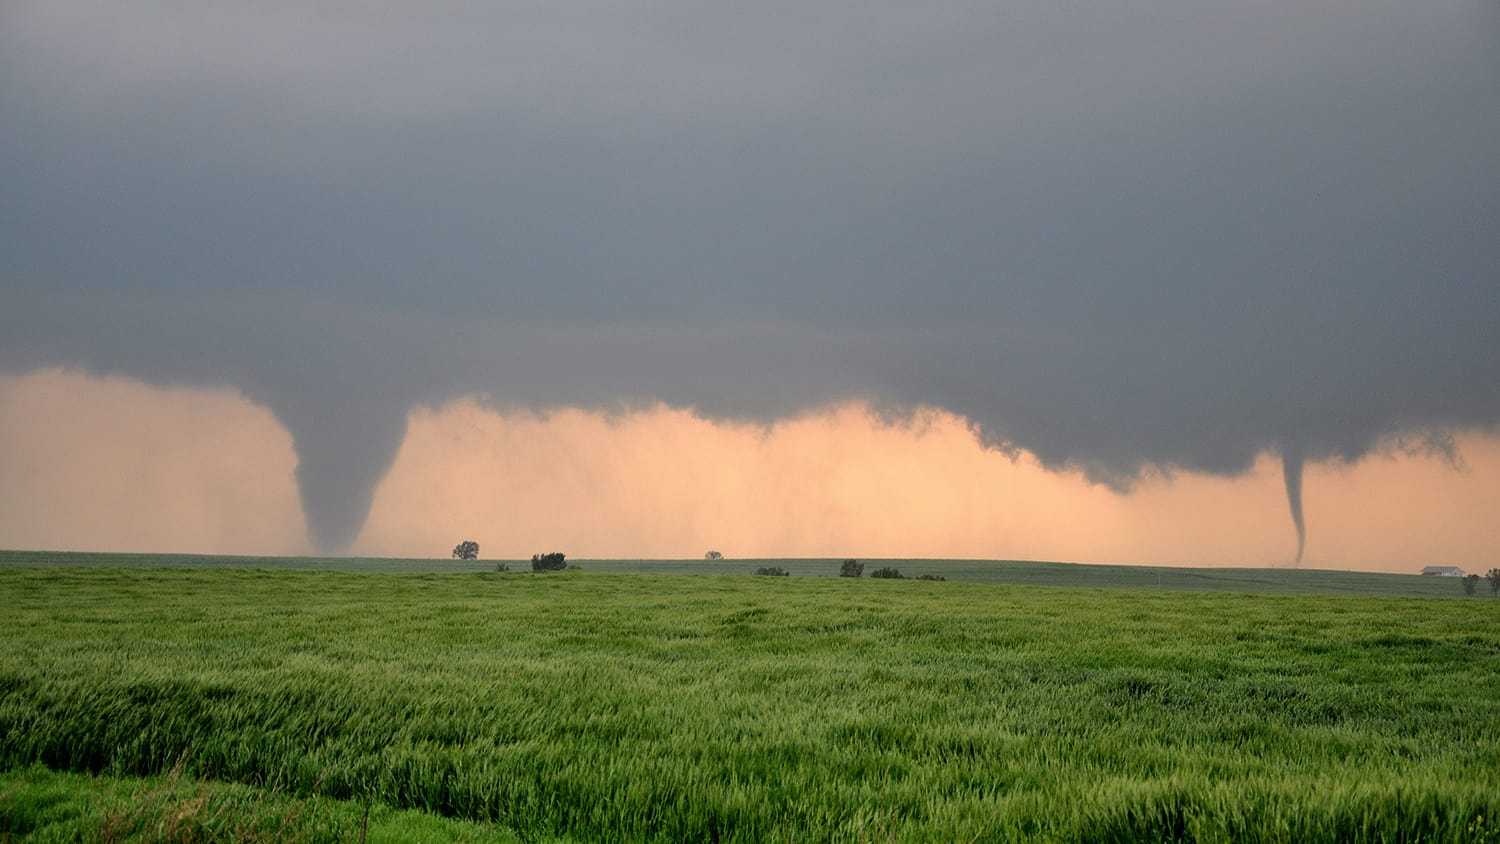 Tornadoes pictured in the distance of a field. Photo from Postdoctoral Research Scholar Brice Coffer.